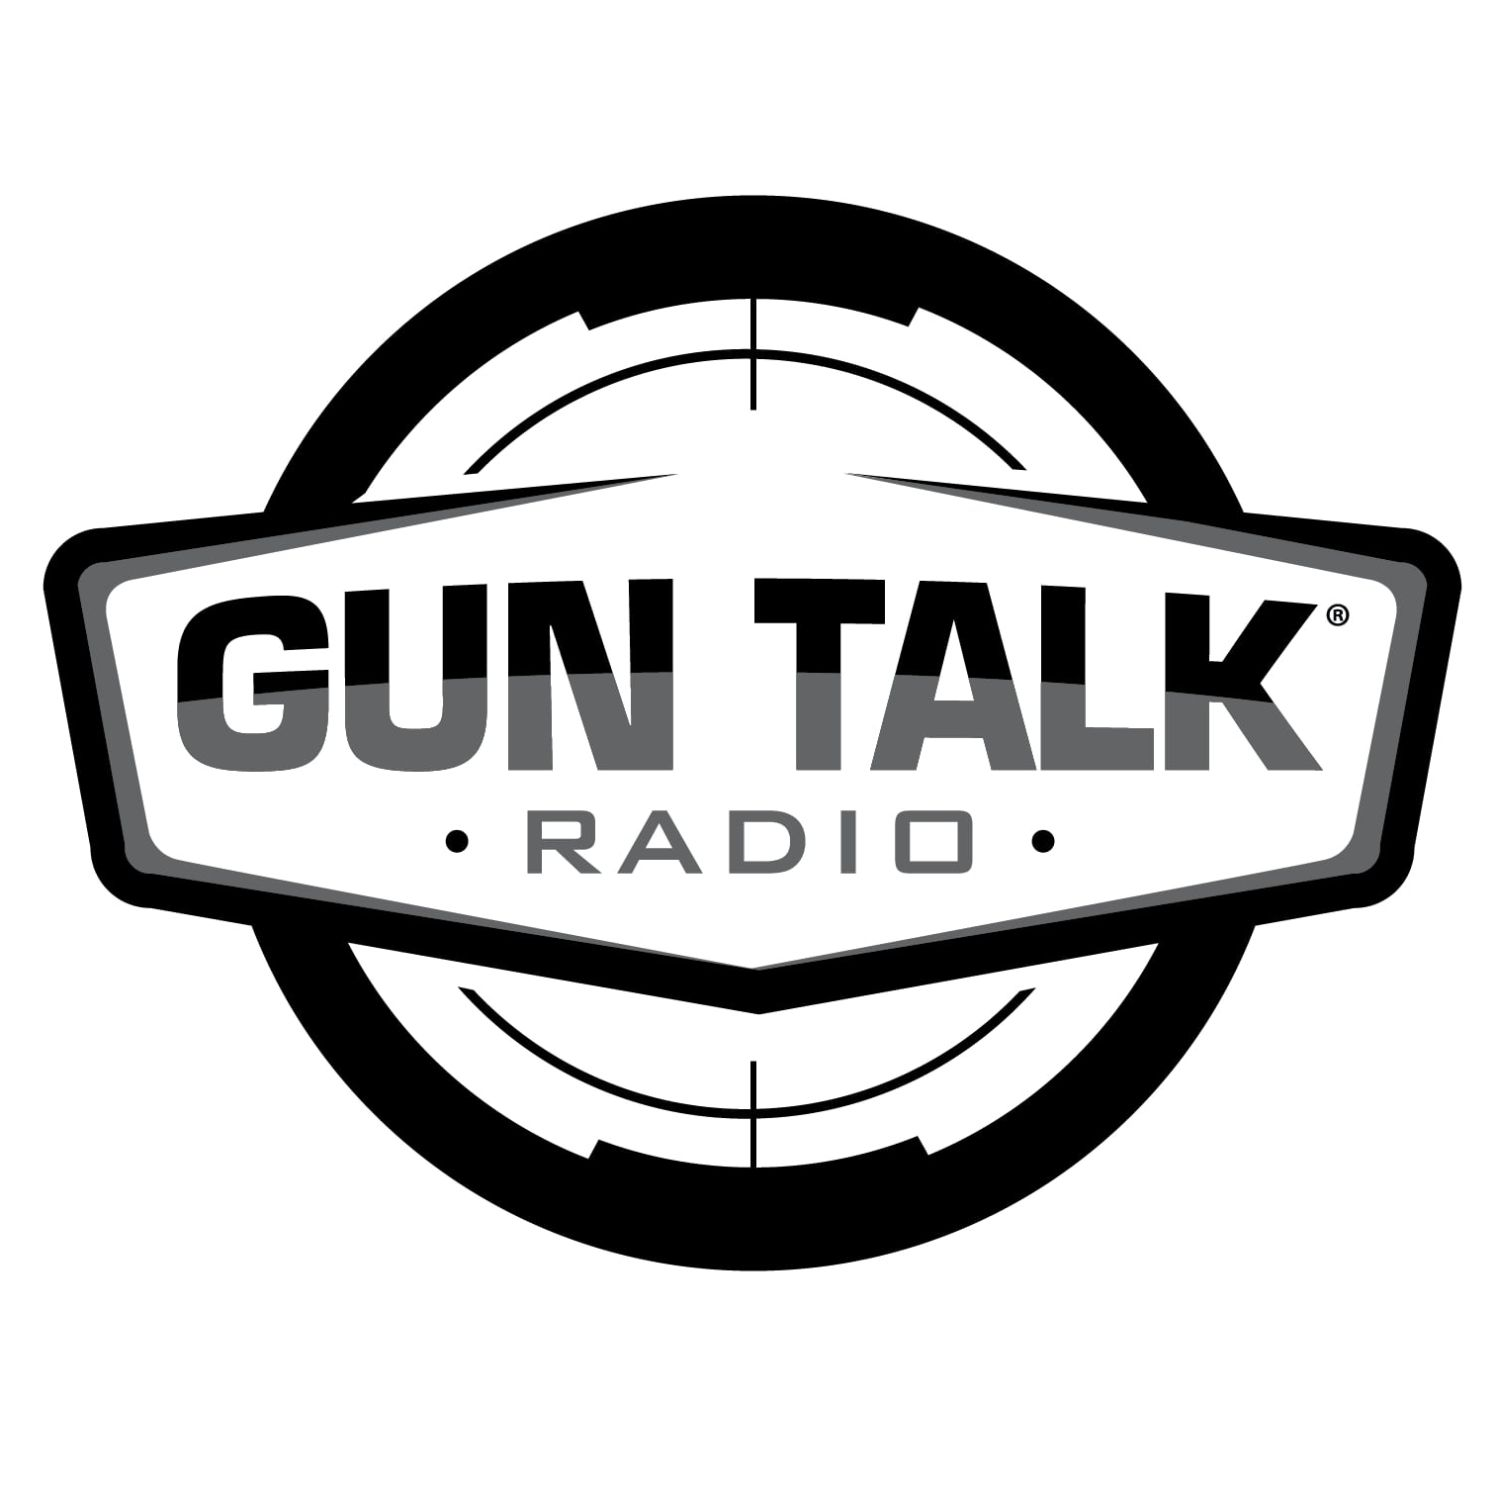 Artwork for Guntalk 2009-06-07 Part C